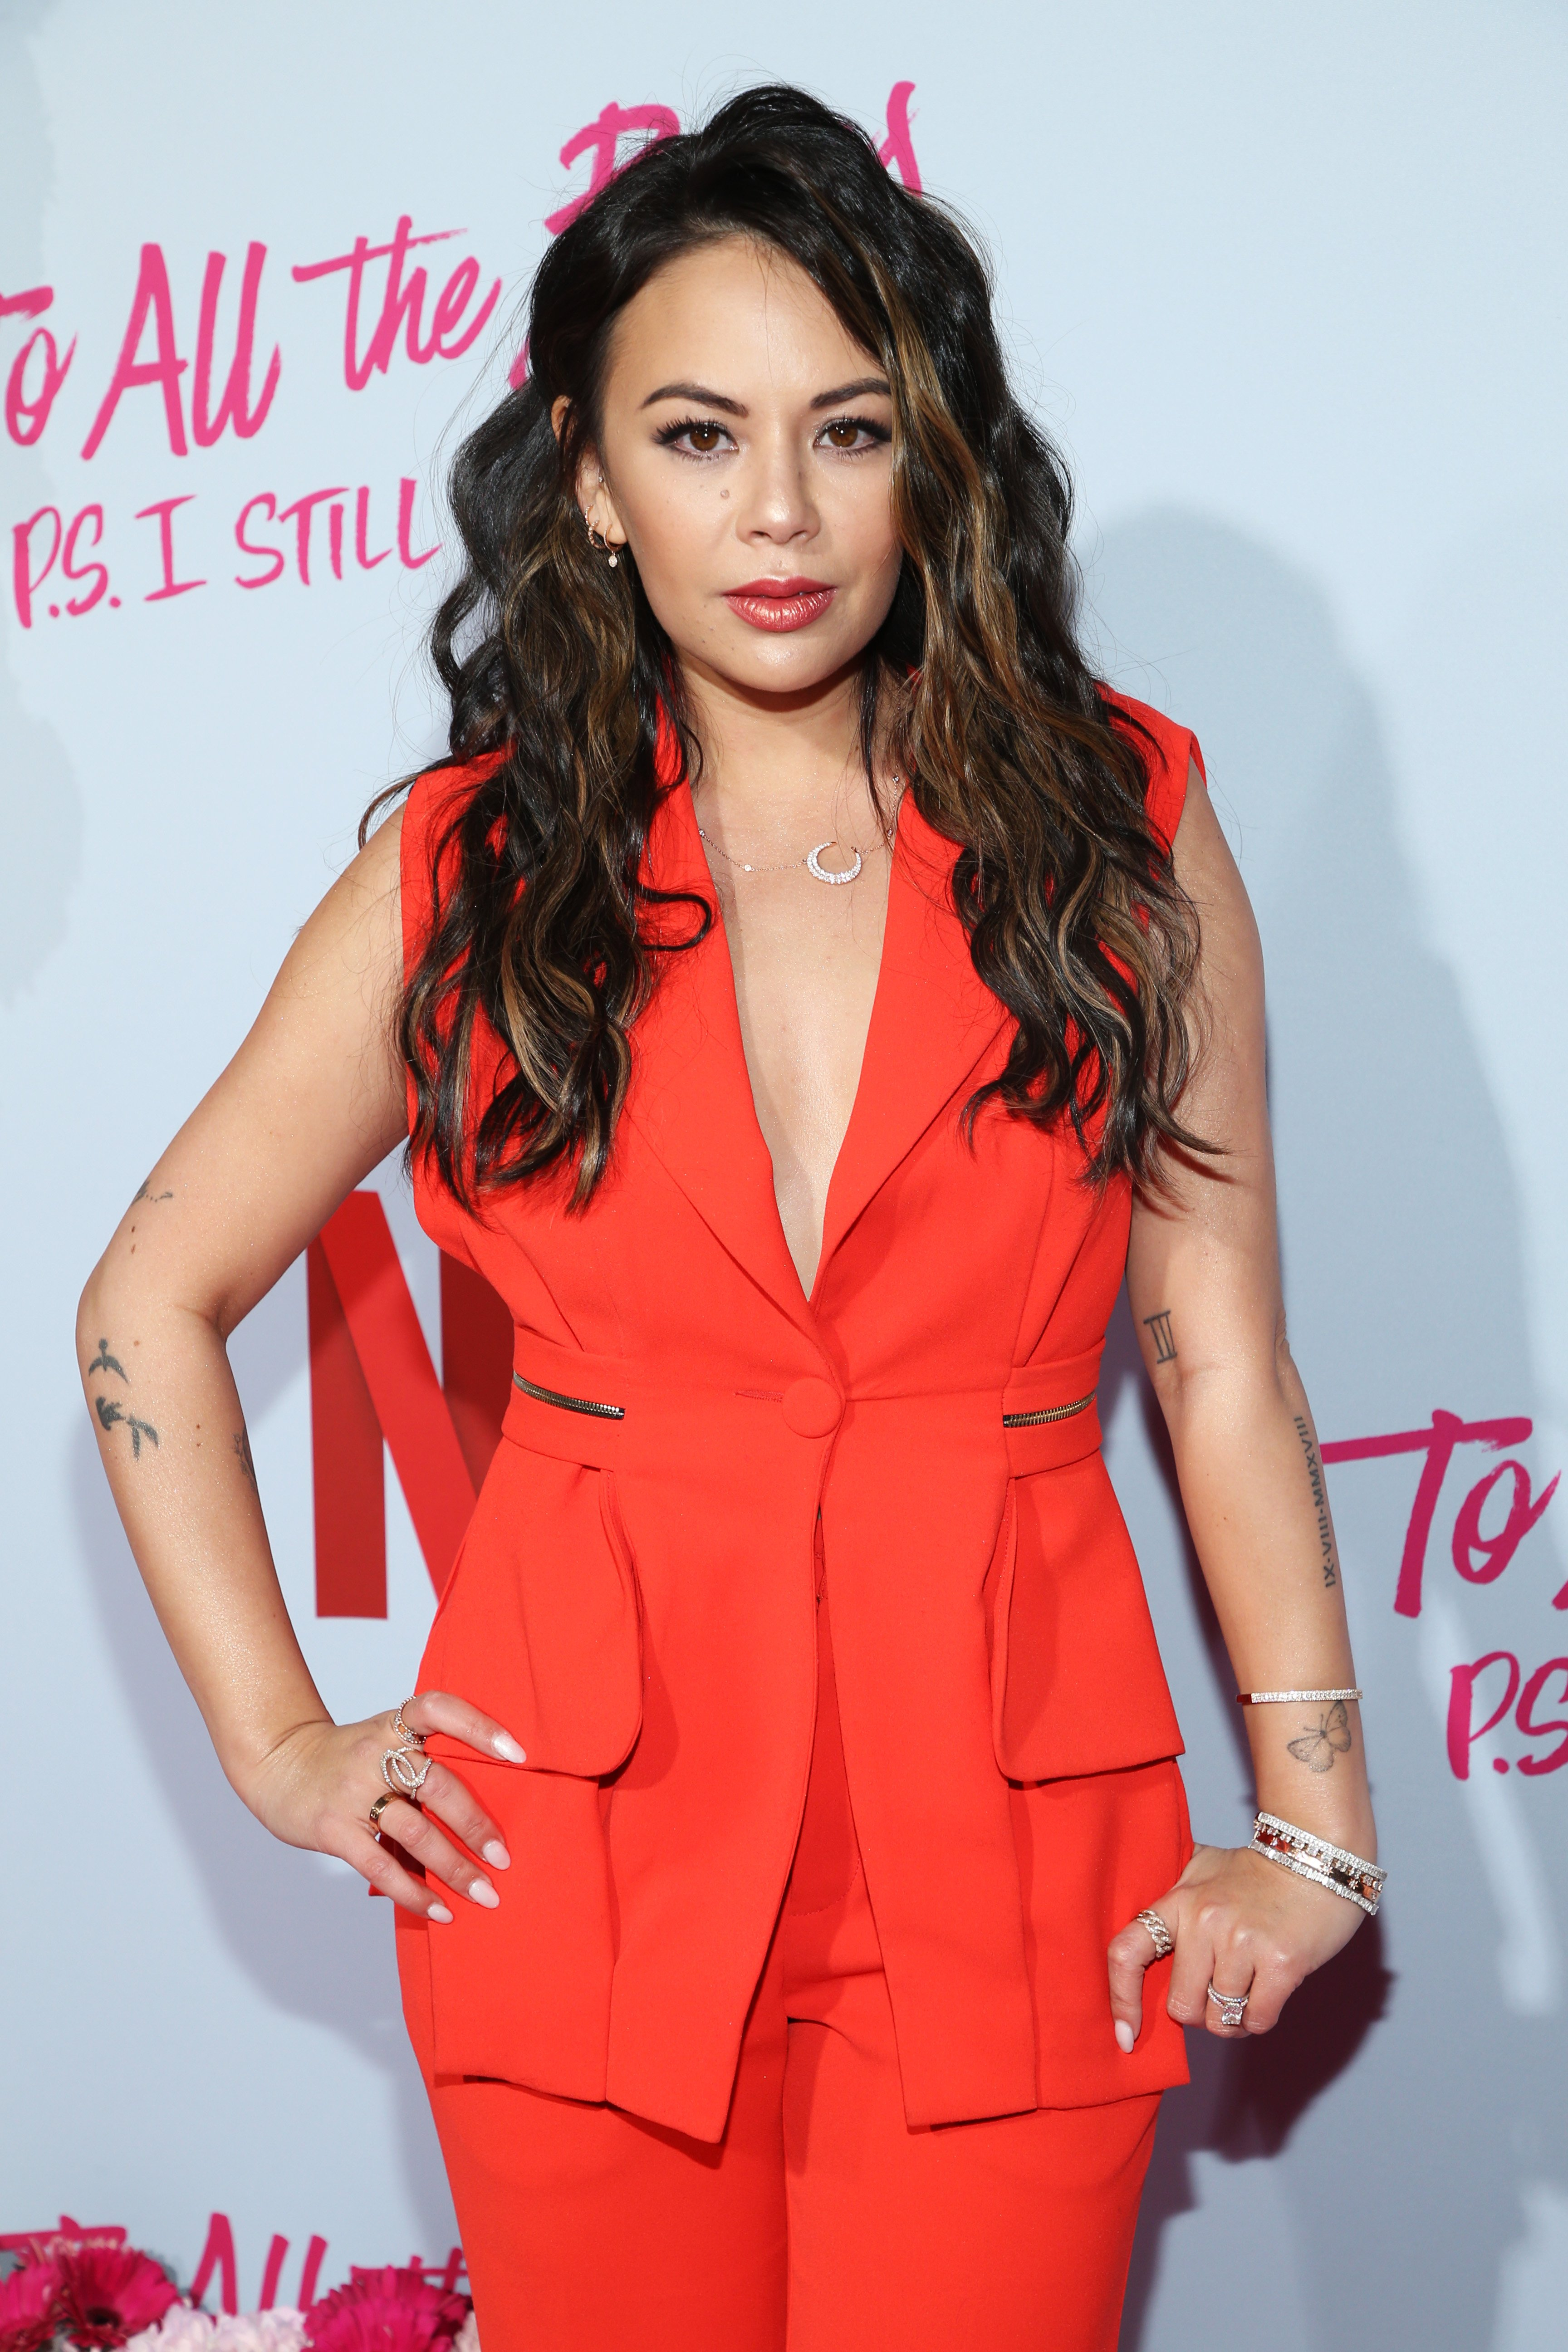 """Janel Parrish poses at the premiere of Netflix's """"To All The Boys: P.S. I Still Love You"""" at the Egyptian Theatre on February 03, 2020 in Hollywood, California. 